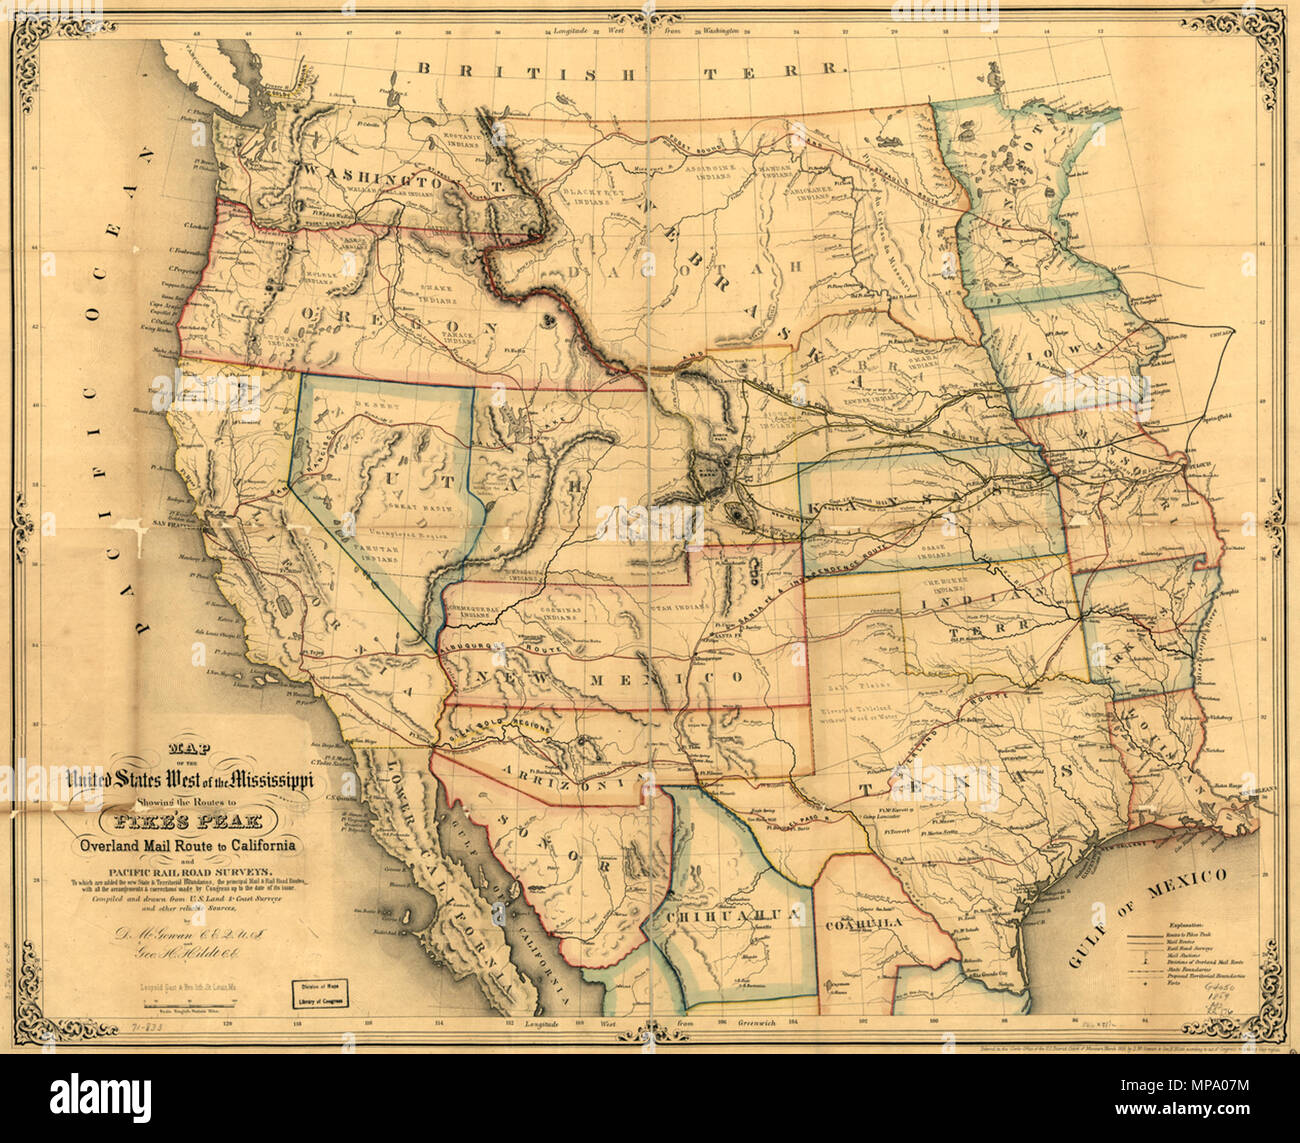 Transcontinental Railroad Map Stock Photos & Transcontinental ...